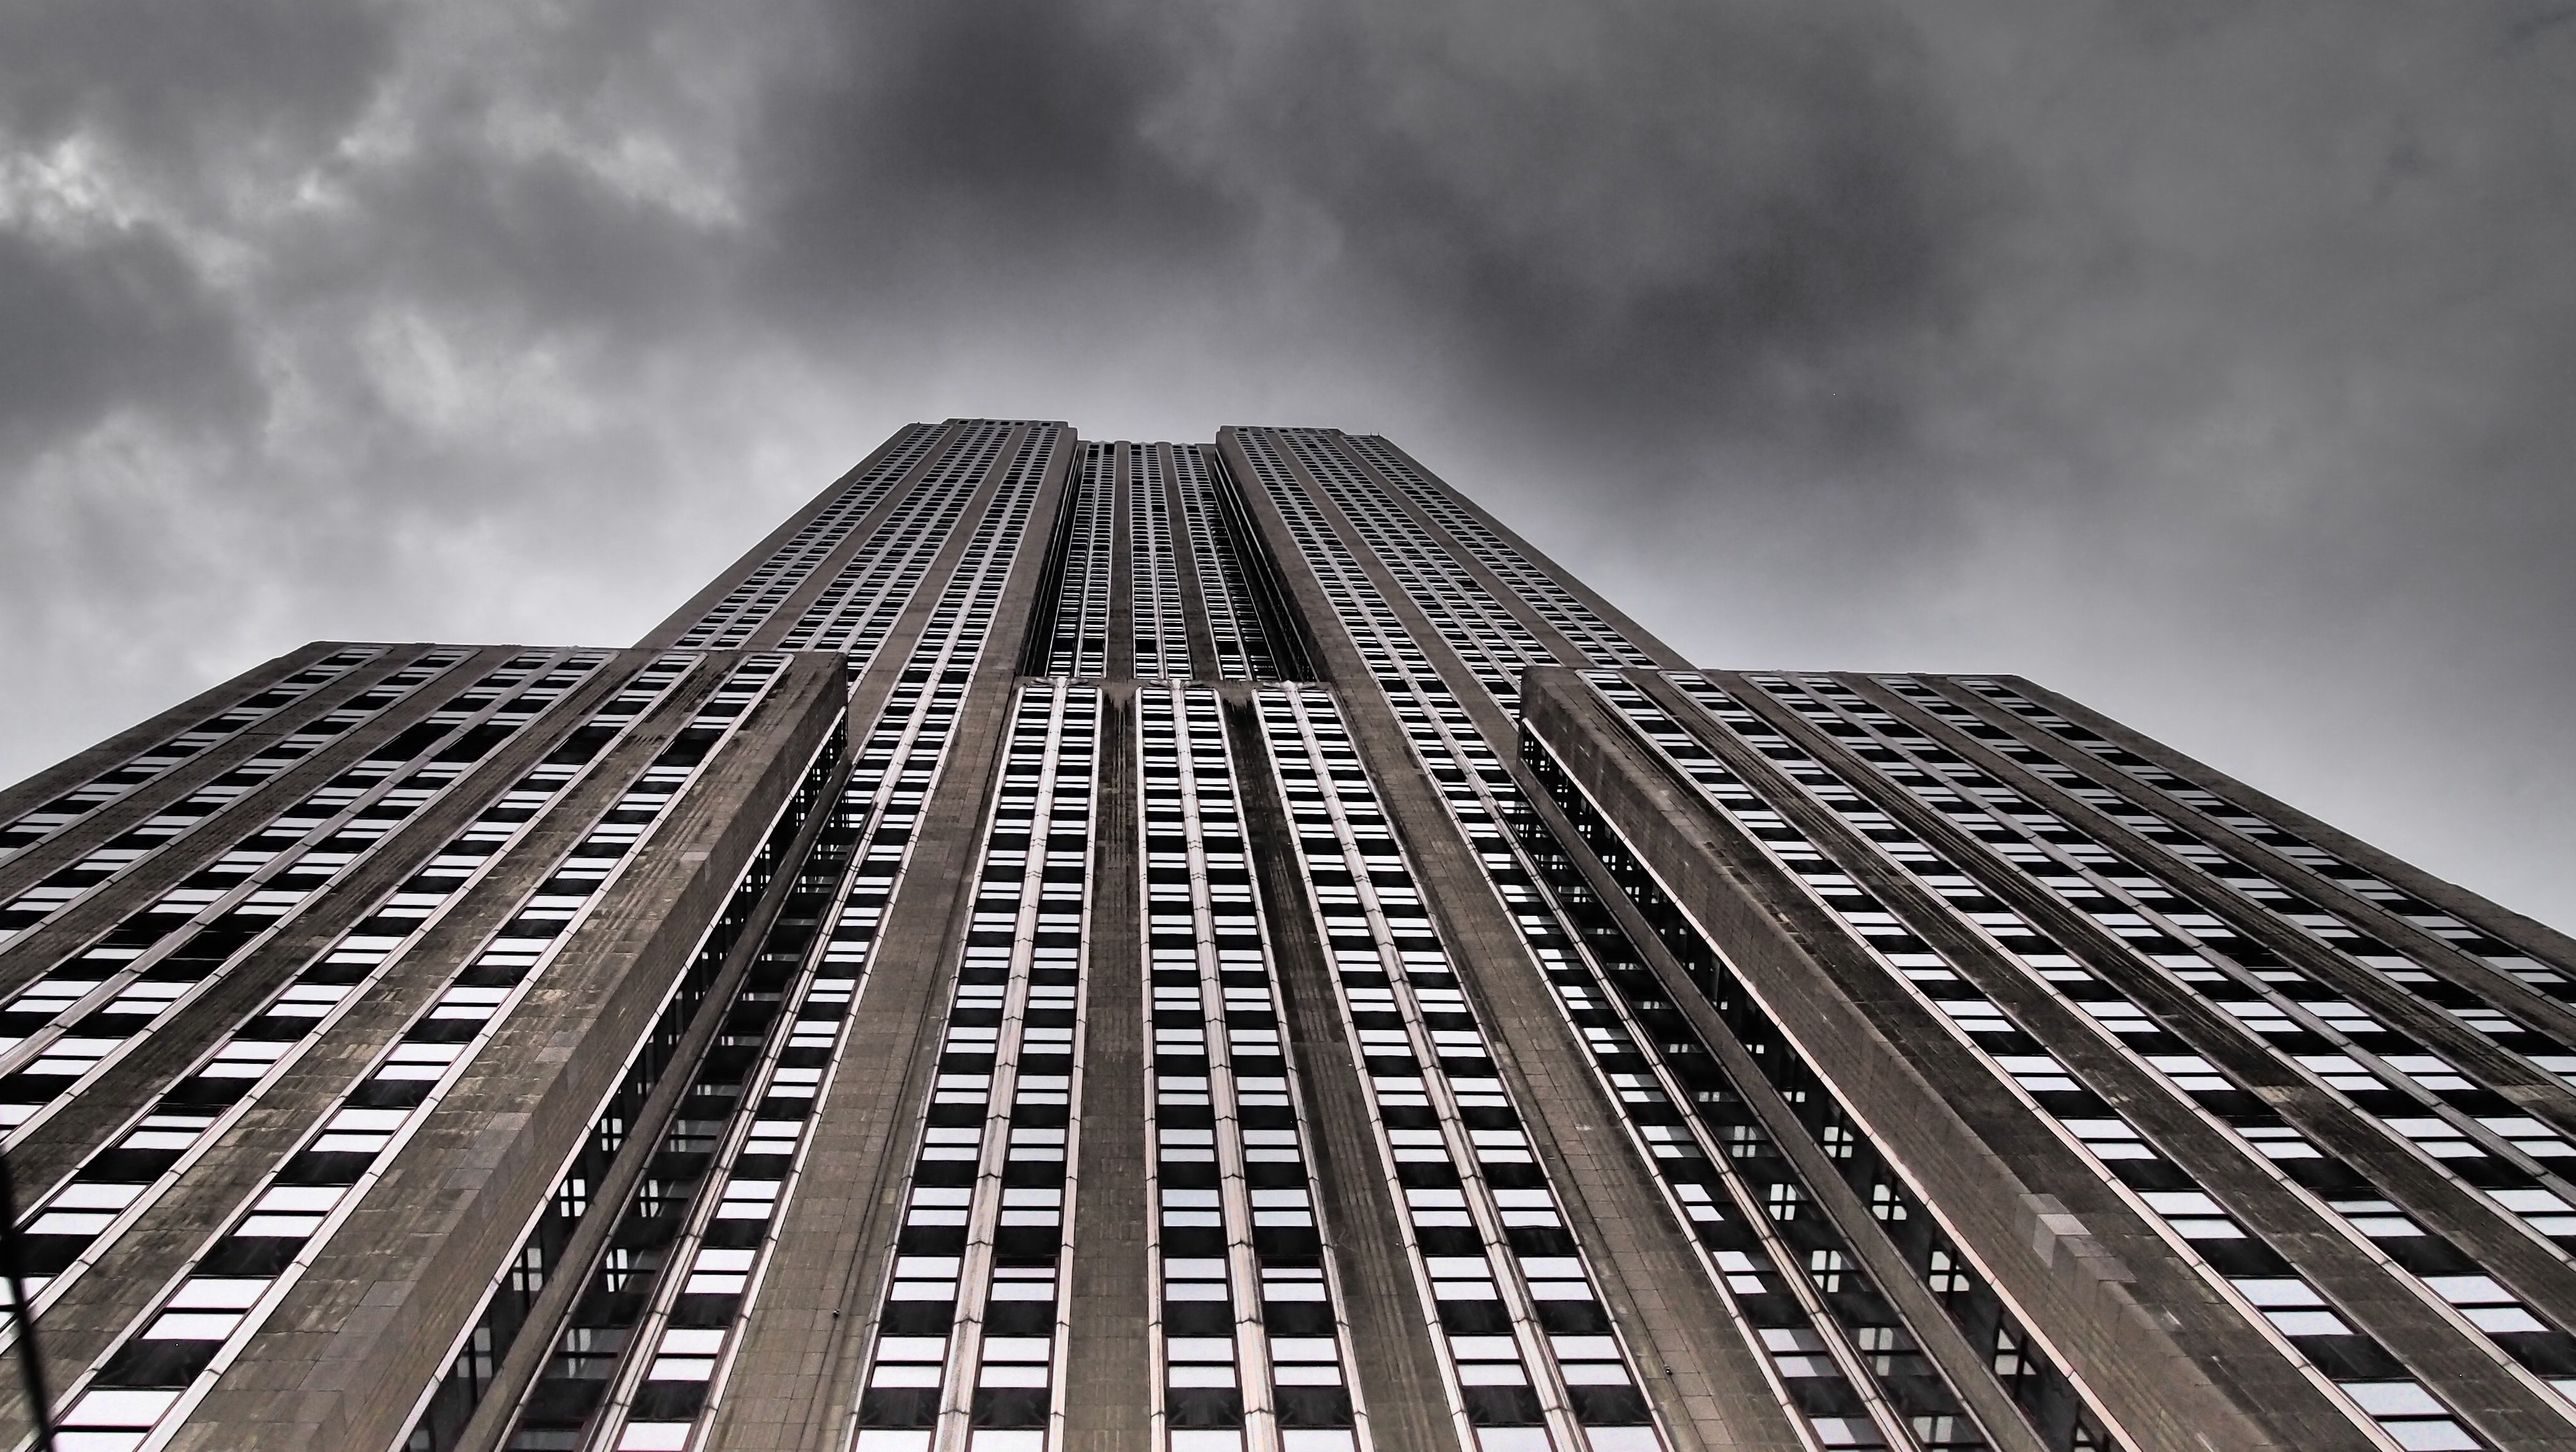 building-city-empire-state-building-39695